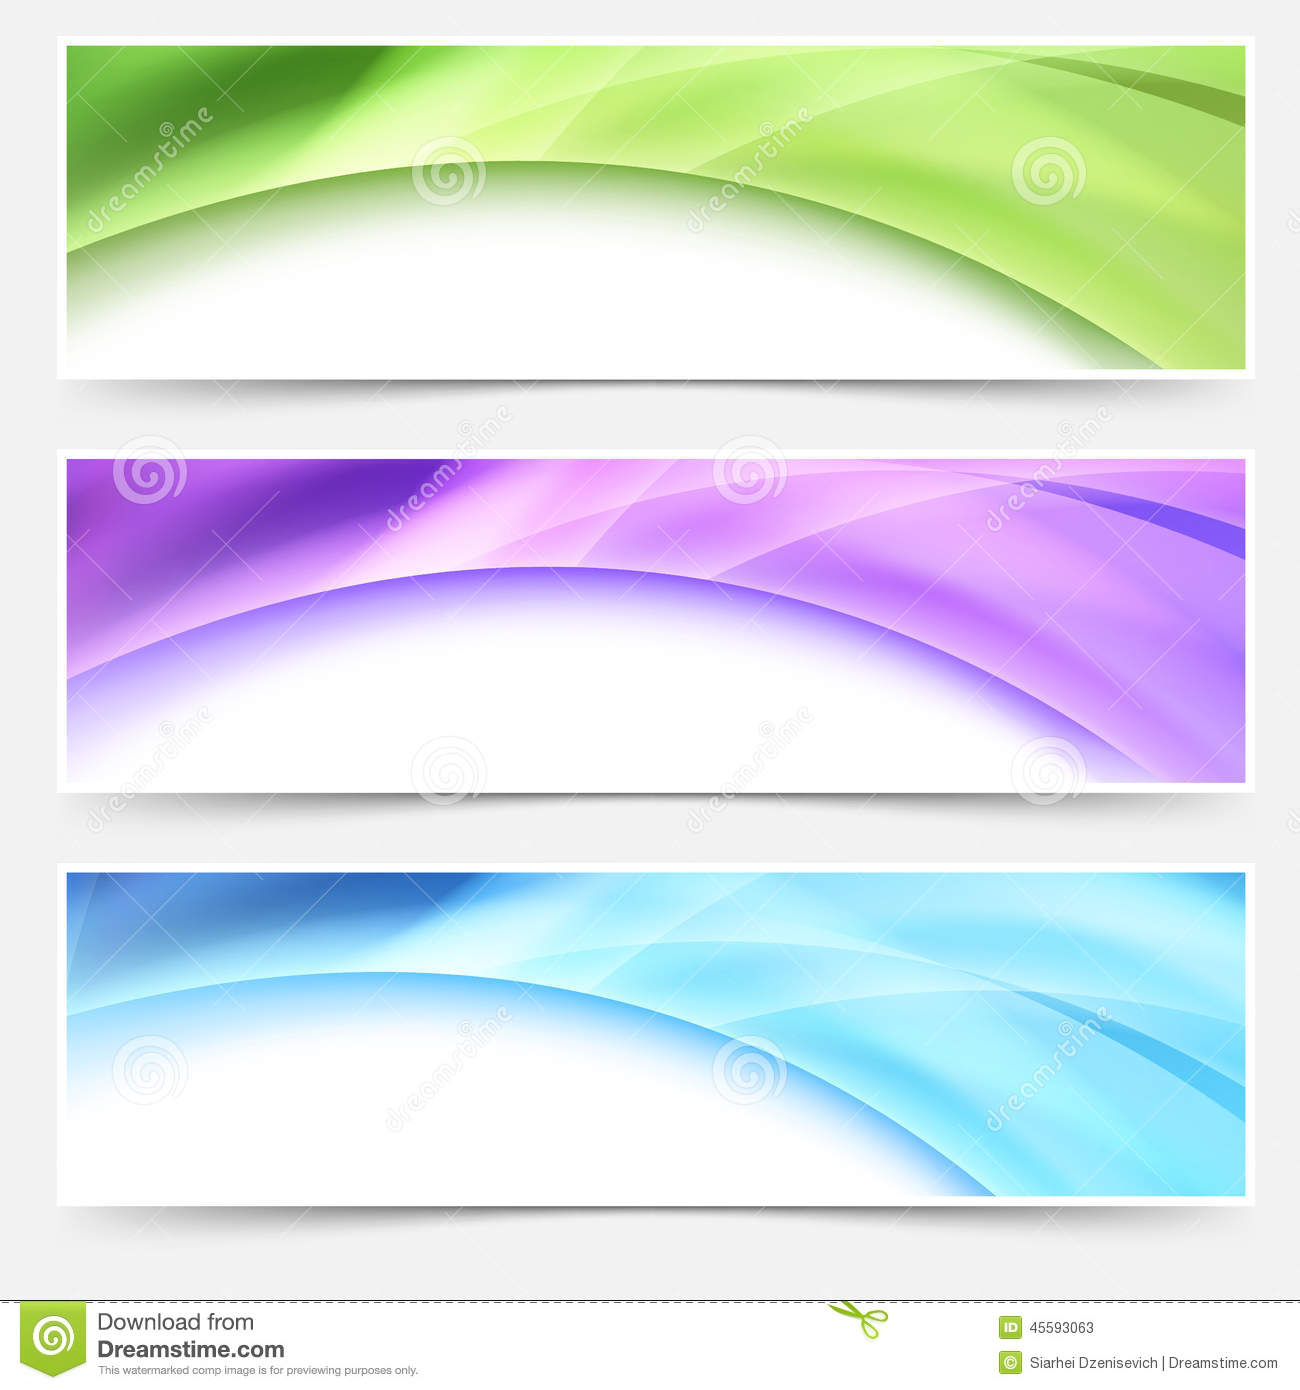 Header And Footer Design Free Download